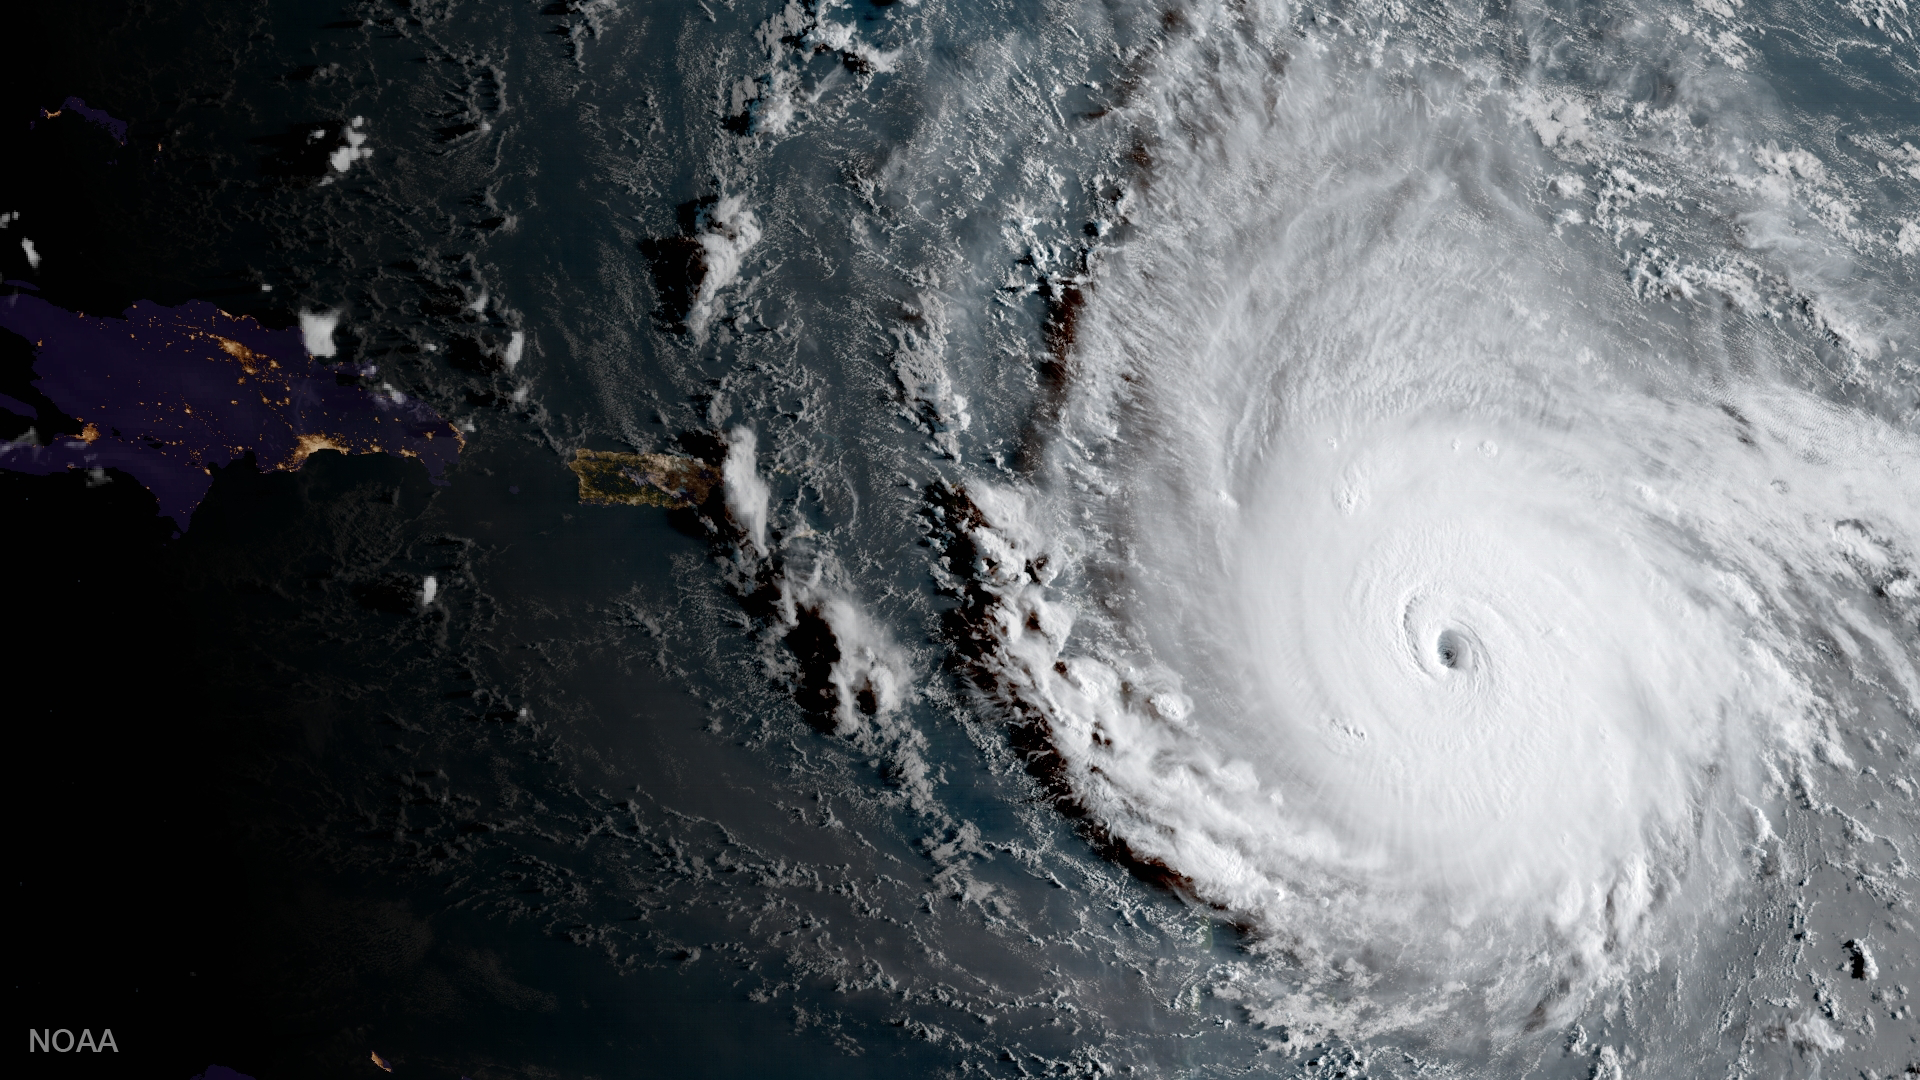 IRMA NOW THE MOST POWERFUL HURRICANE IN RECORDED HISTORY